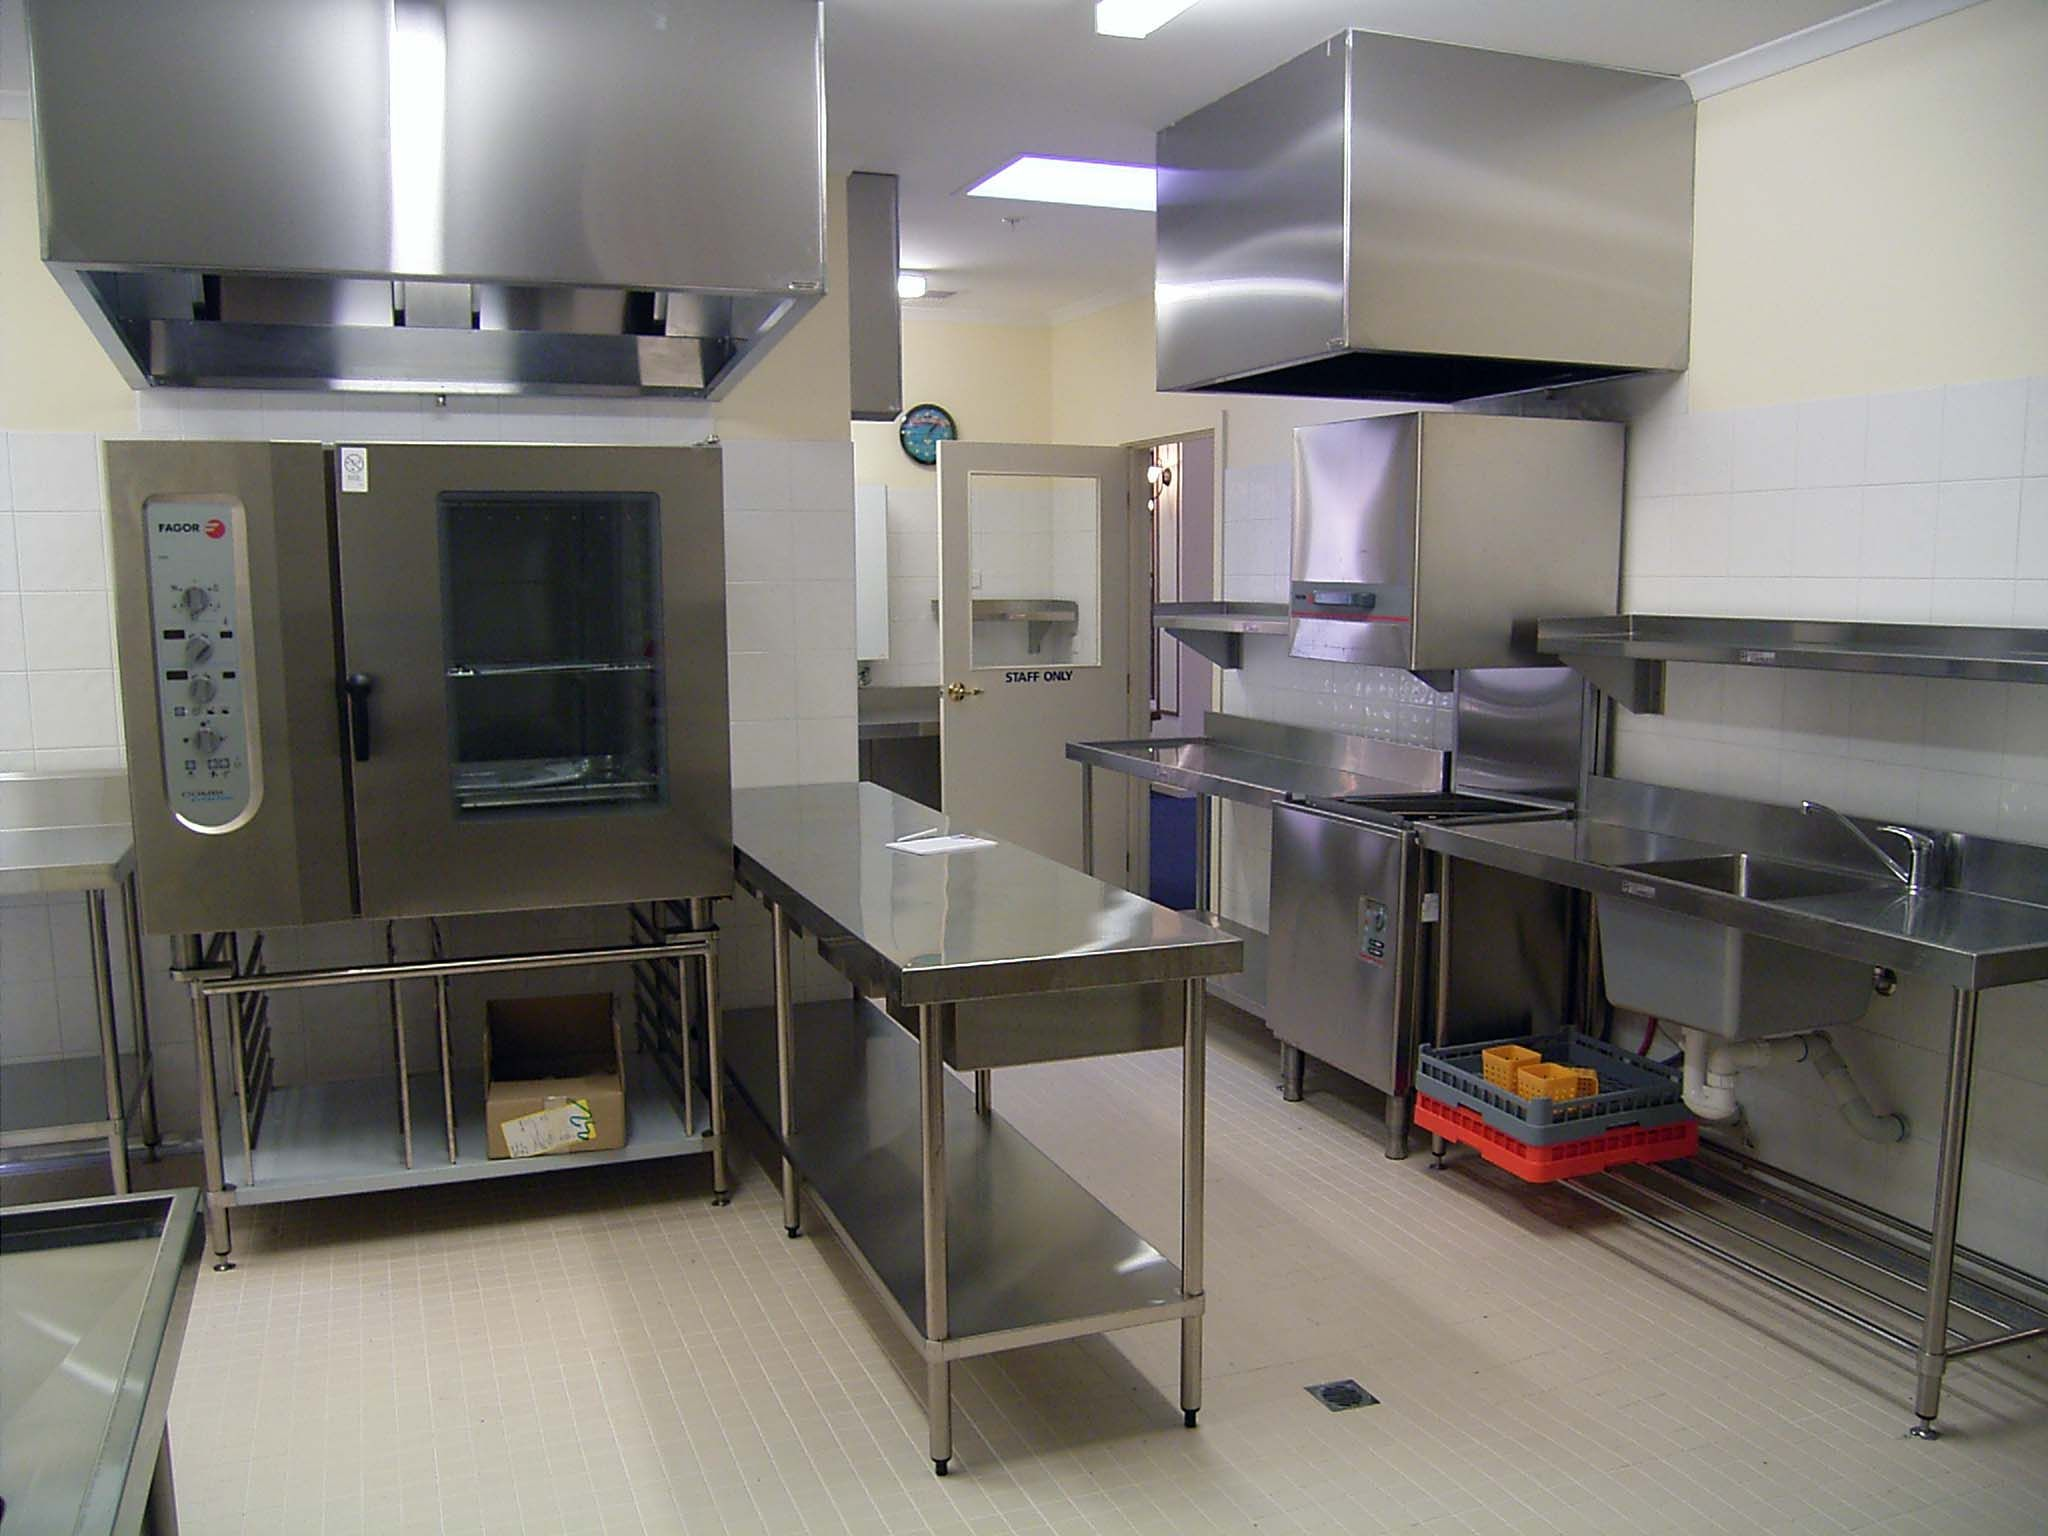 Restaurant Kitchen Organization Ideas about commercial kitchen design source:- google.pk what began